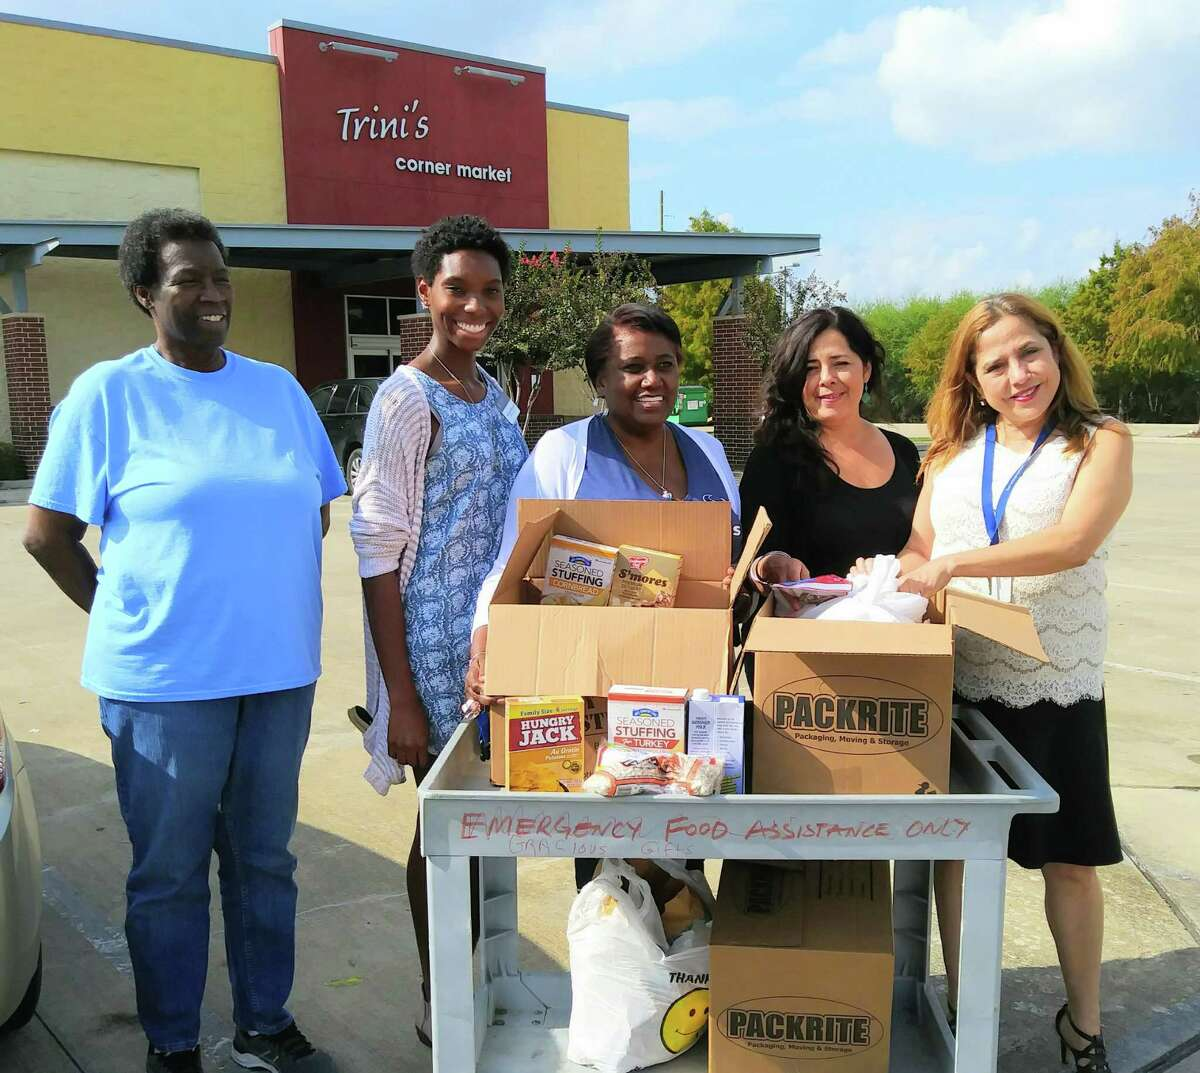 Accepting the grocery donation from Sienna Plantation are, from left, Flora Jackson, Arnelle Mitchell with Sienna, Gladys Brumfield, Mary Ann Precopio and Angelica Barcus.